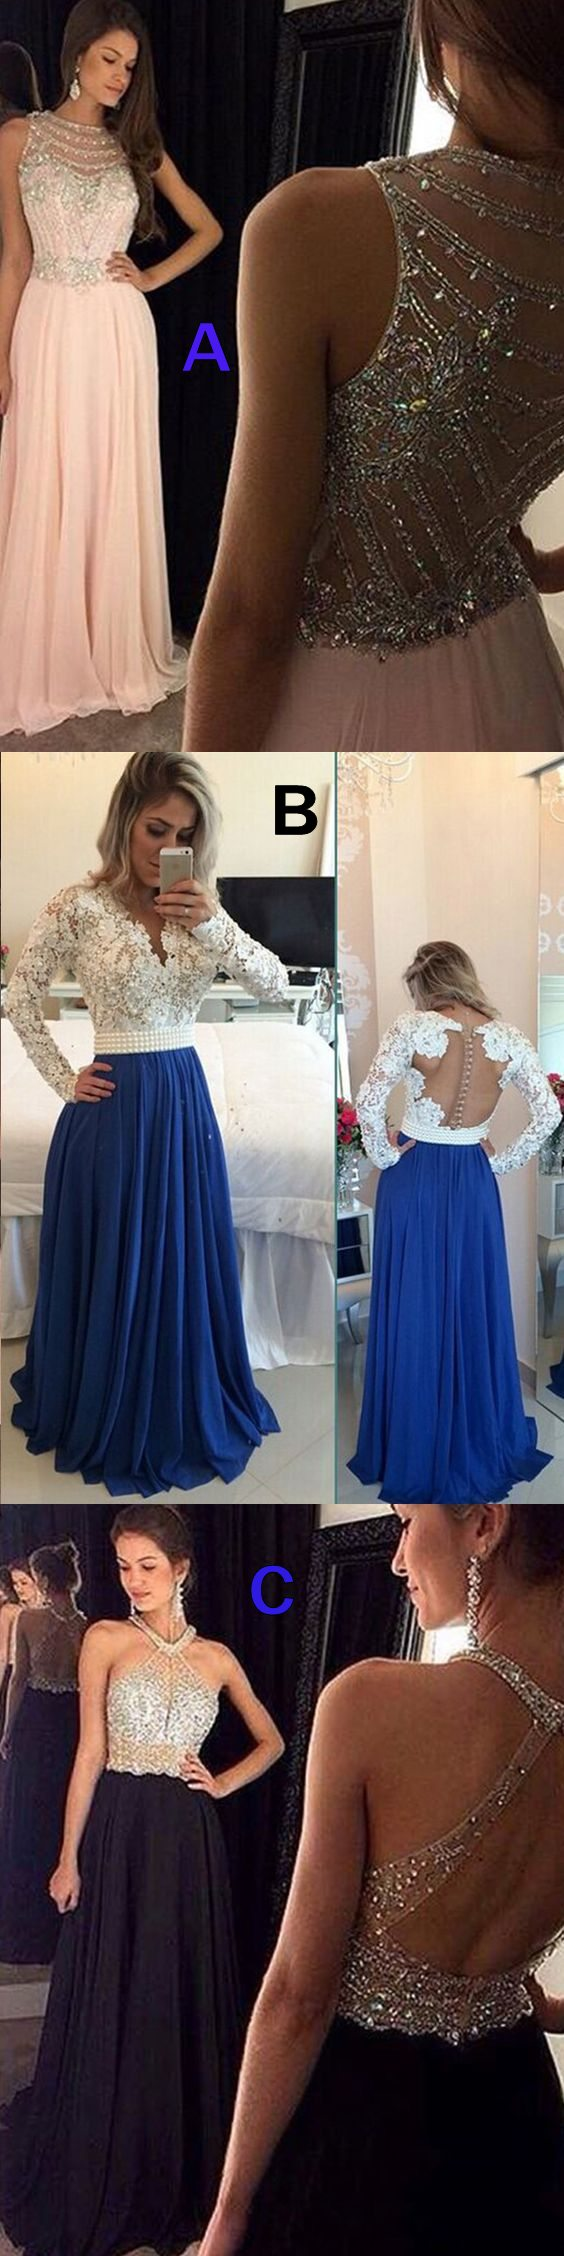 Lace and Chiffon Prom Dress, Long Sleeves Prom | Prom Dresses ...